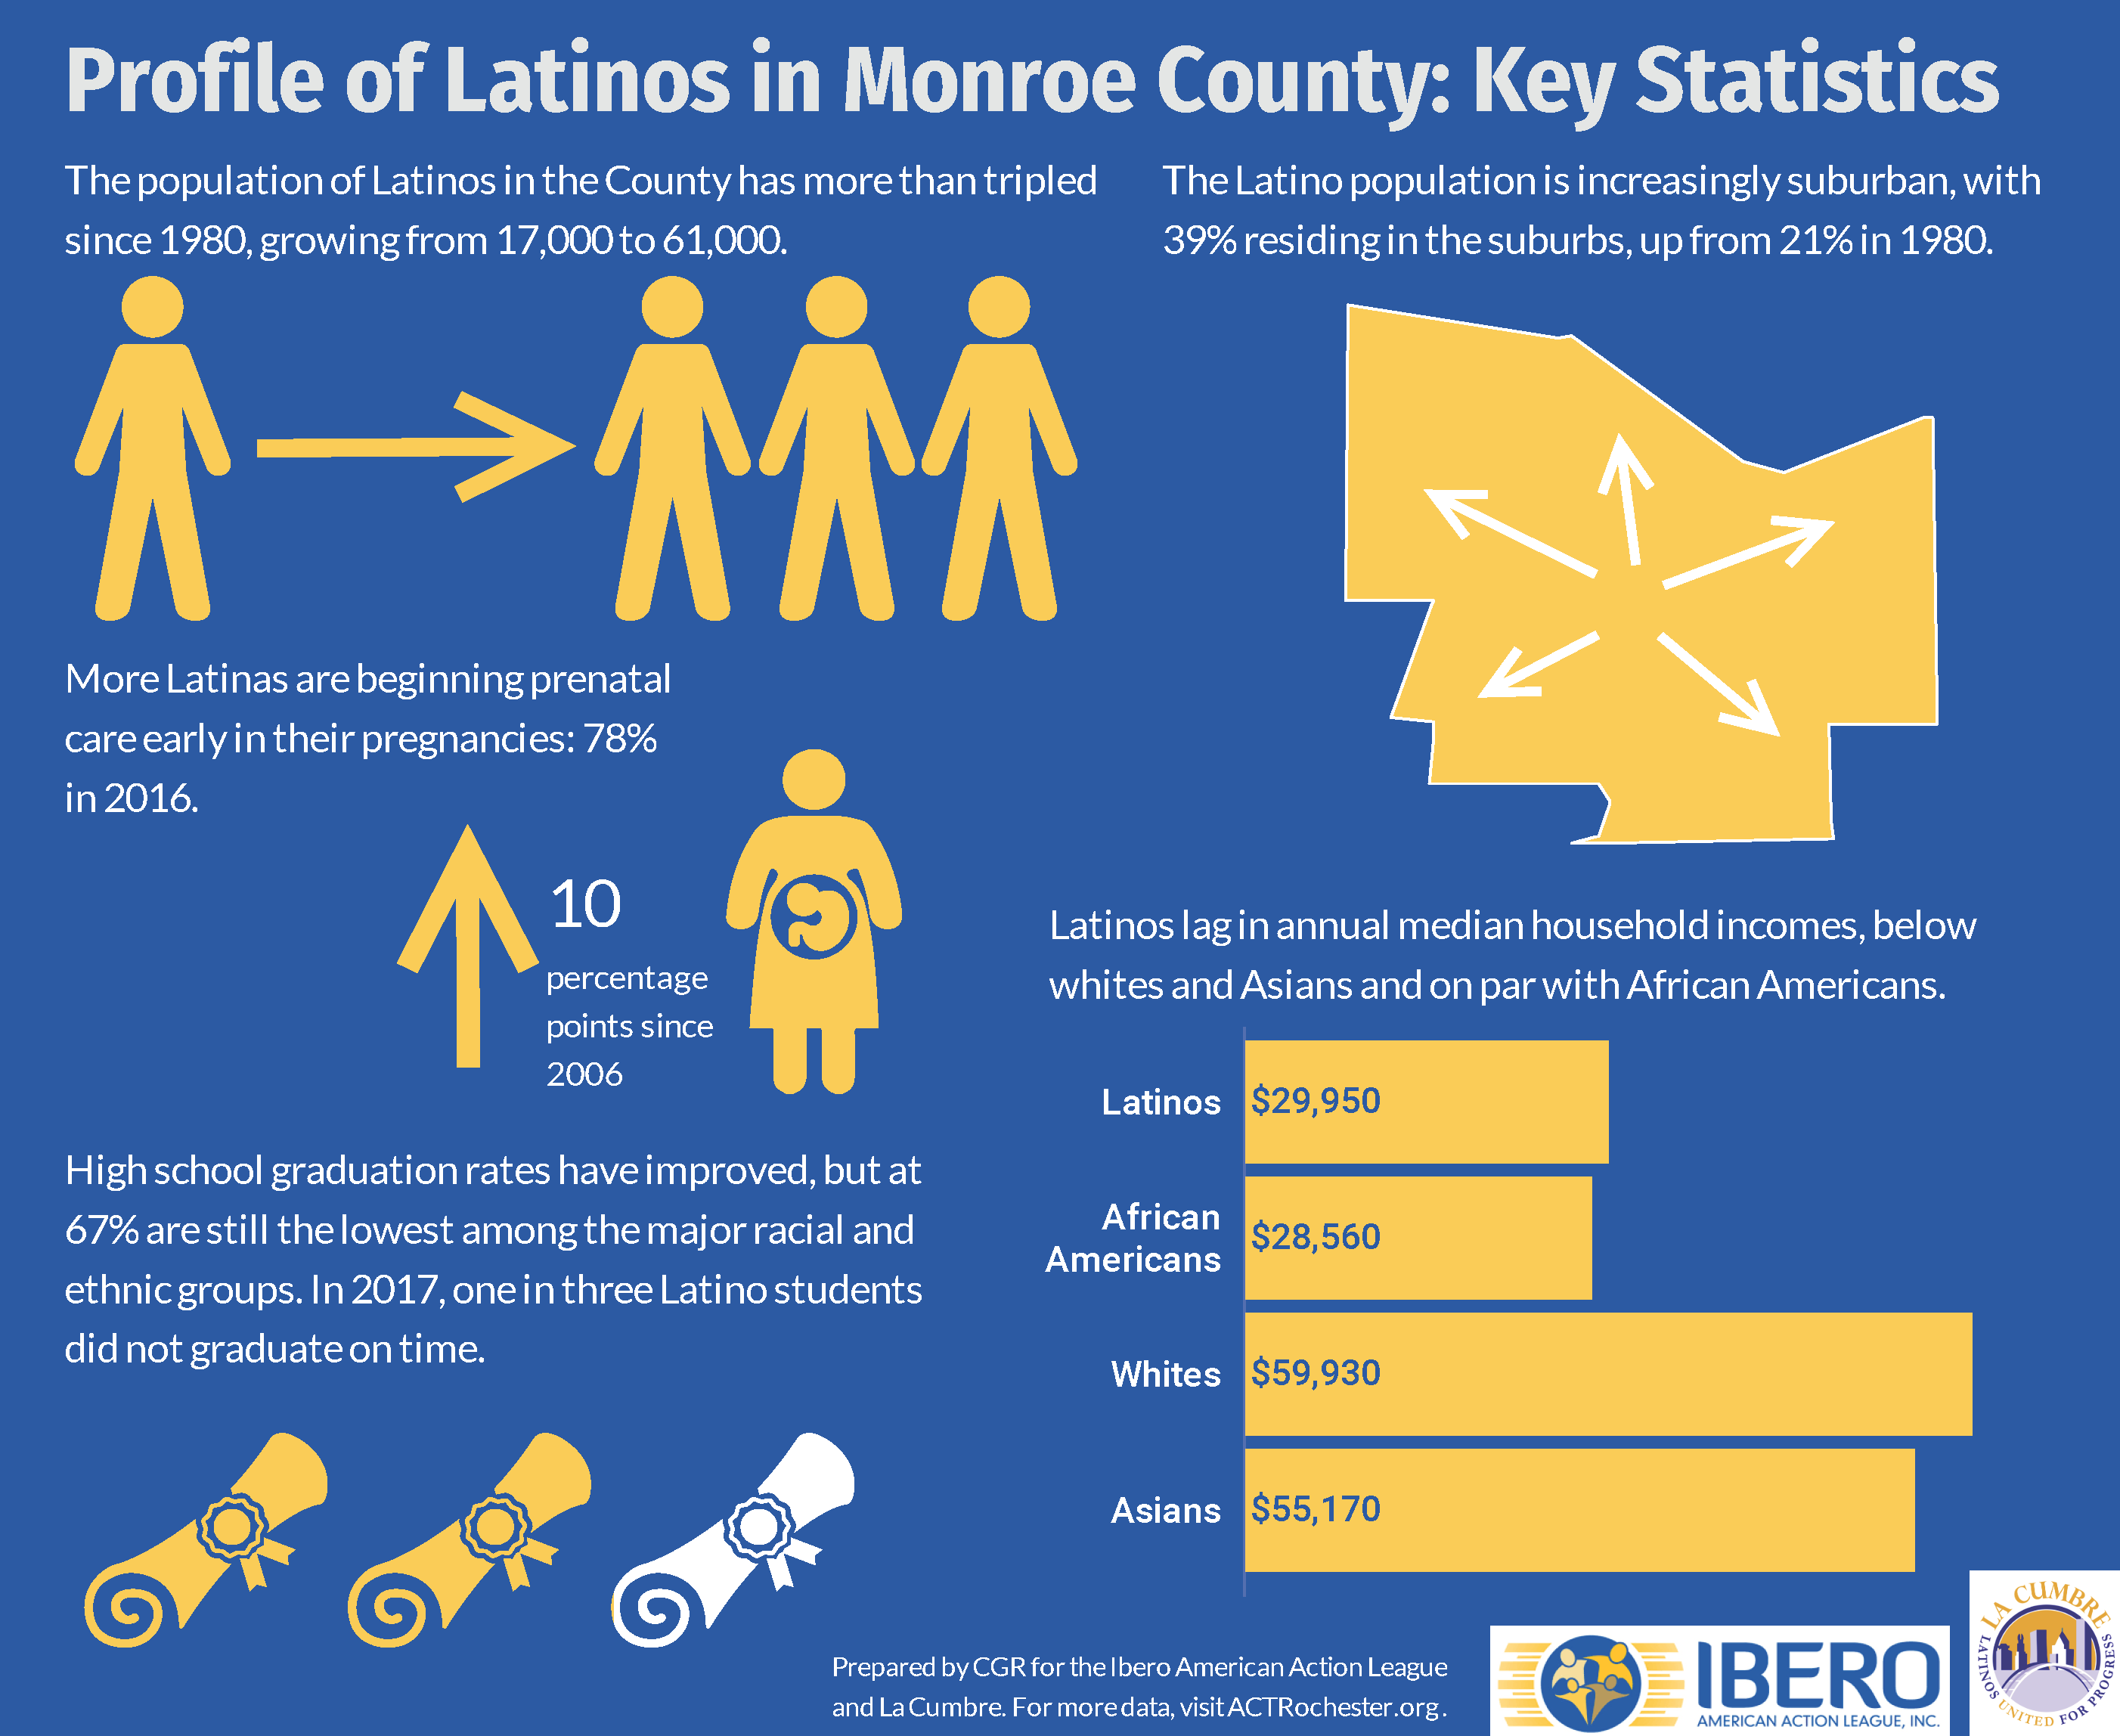 Profile of the Hispanic/Latino Community in Monroe County